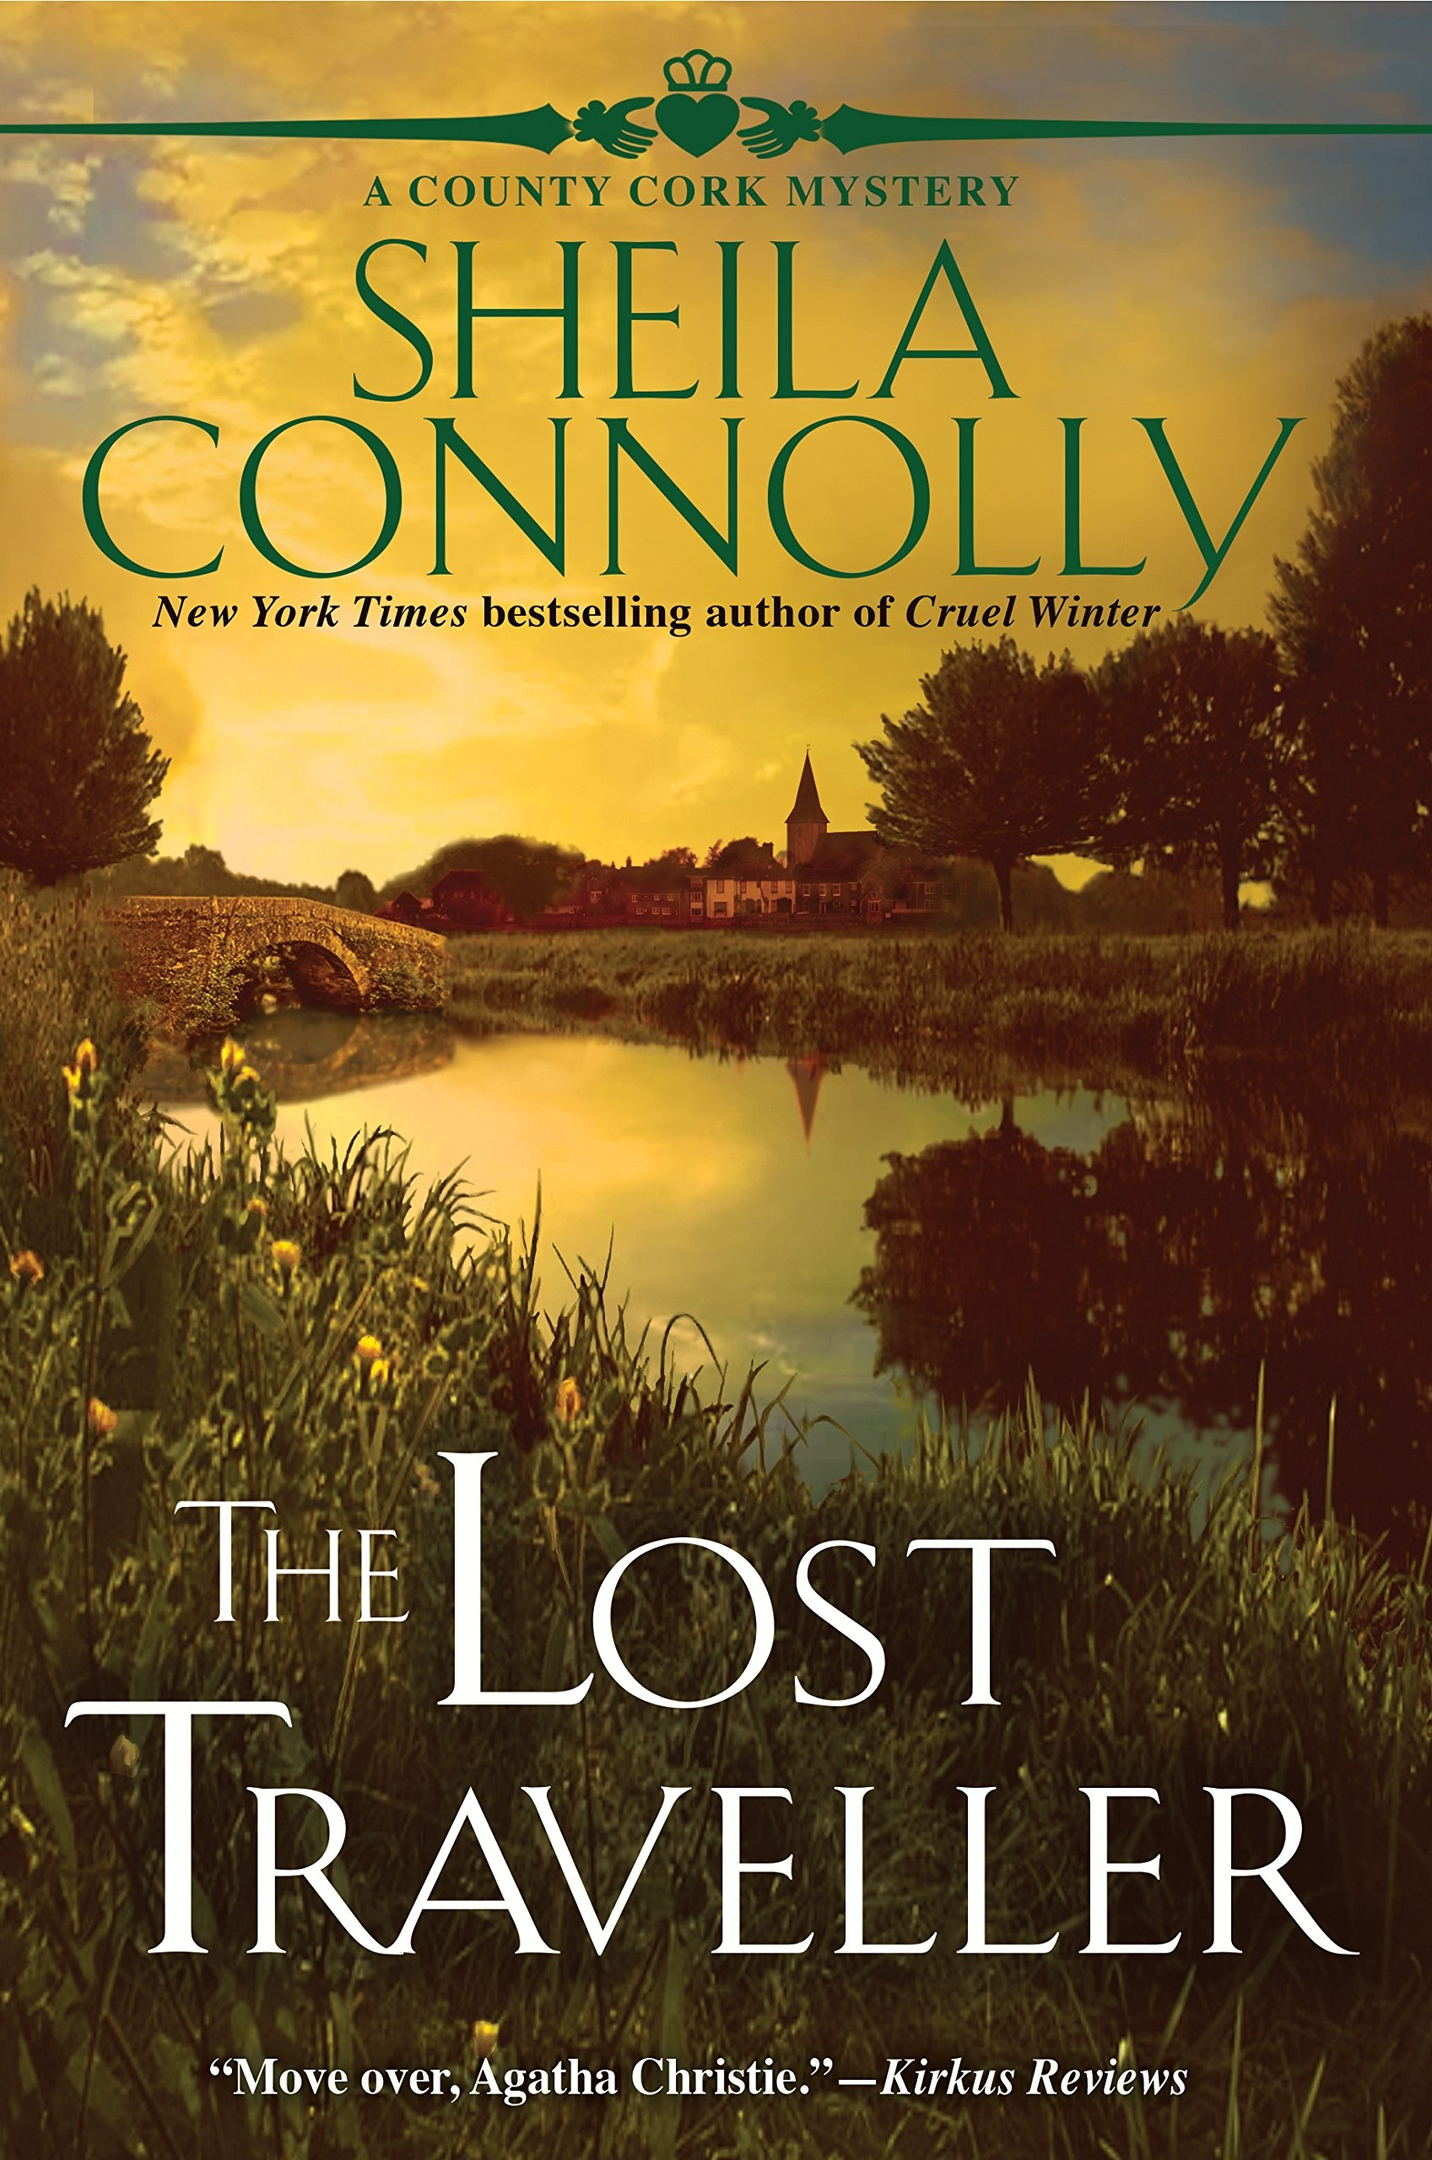 Sheila Connolly – The Lost Traveller